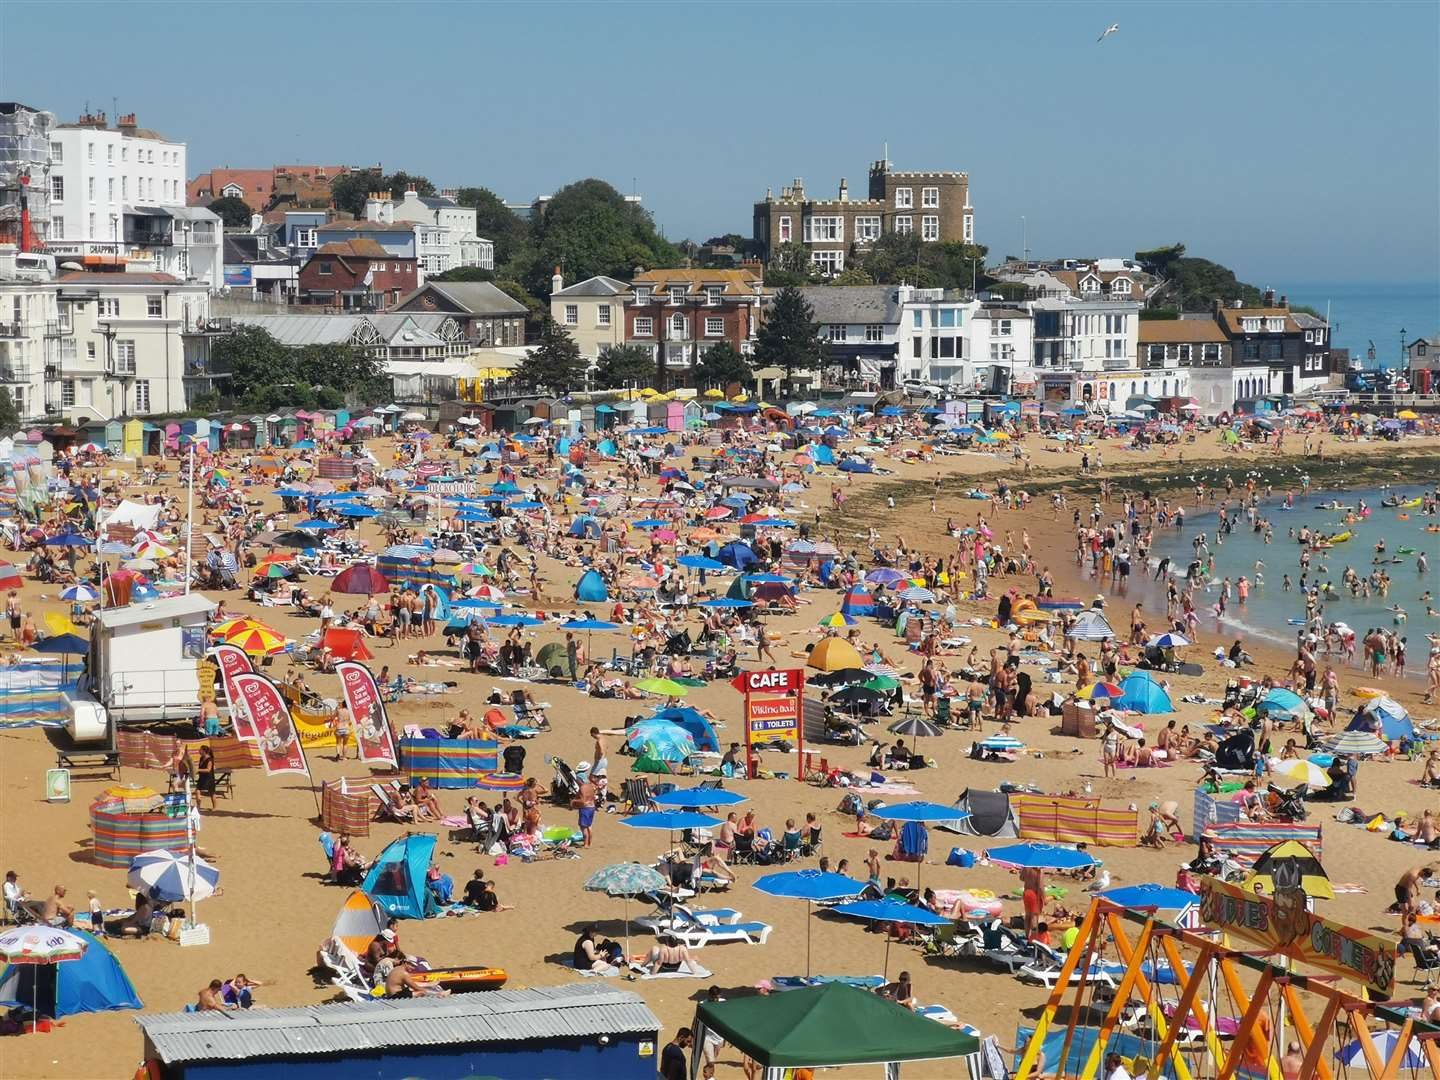 Several beaches in Margate and Thanet are already at capacity